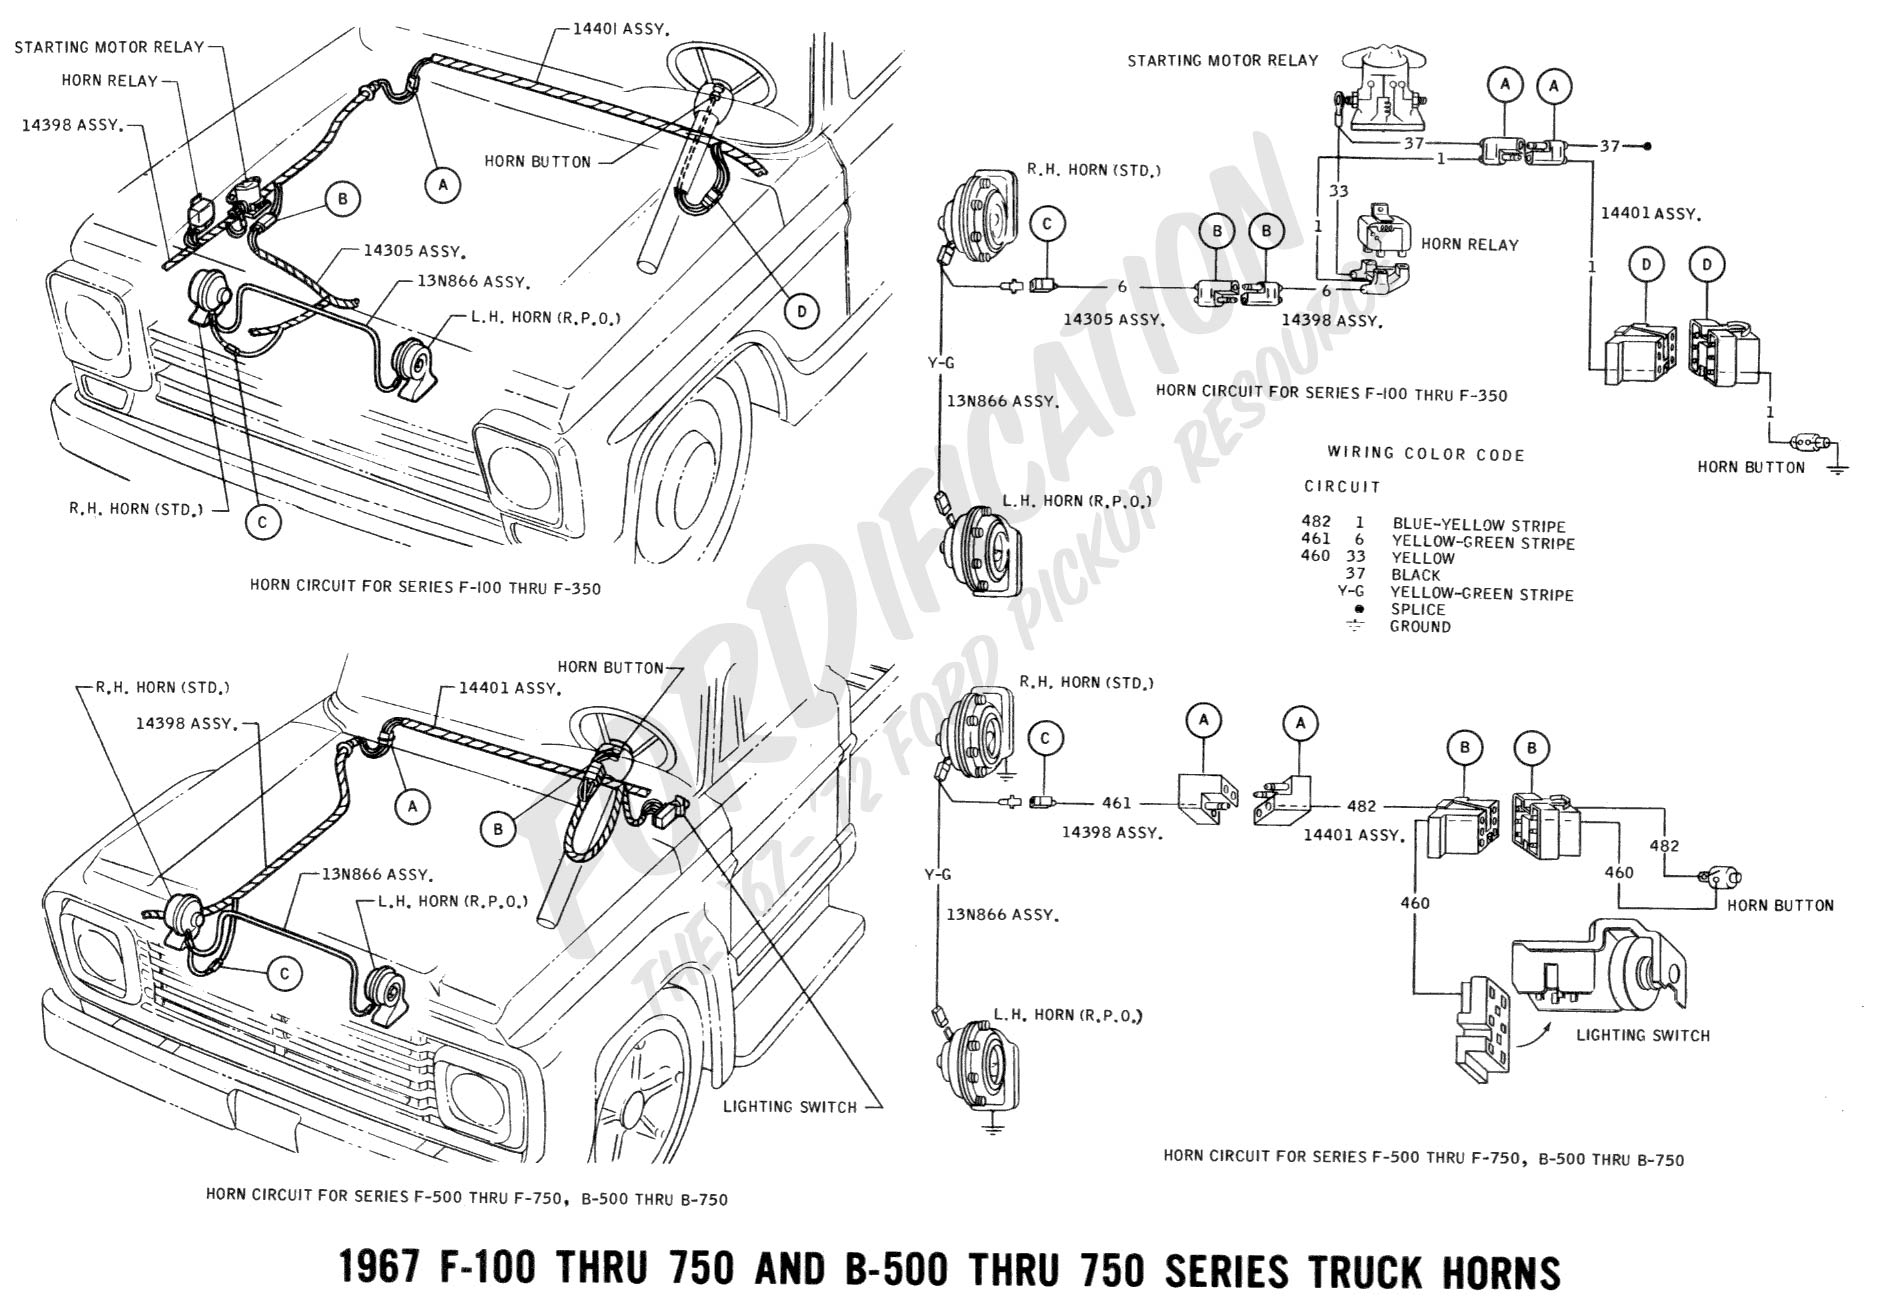 1035785 2006 F350 Fuse Diagrams together with Ford Ranger 1989 Ford Ranger Need Fuse Panel Diagram For 89 Ford Range as well Location Of Abs Module in addition 6e10f 1988 Ford F350 Super Duty 7 3 Diesel Fuel Guage moreover 99 Civic Wiring Diagram. on 2008 ford f 250 fuse panel diagram